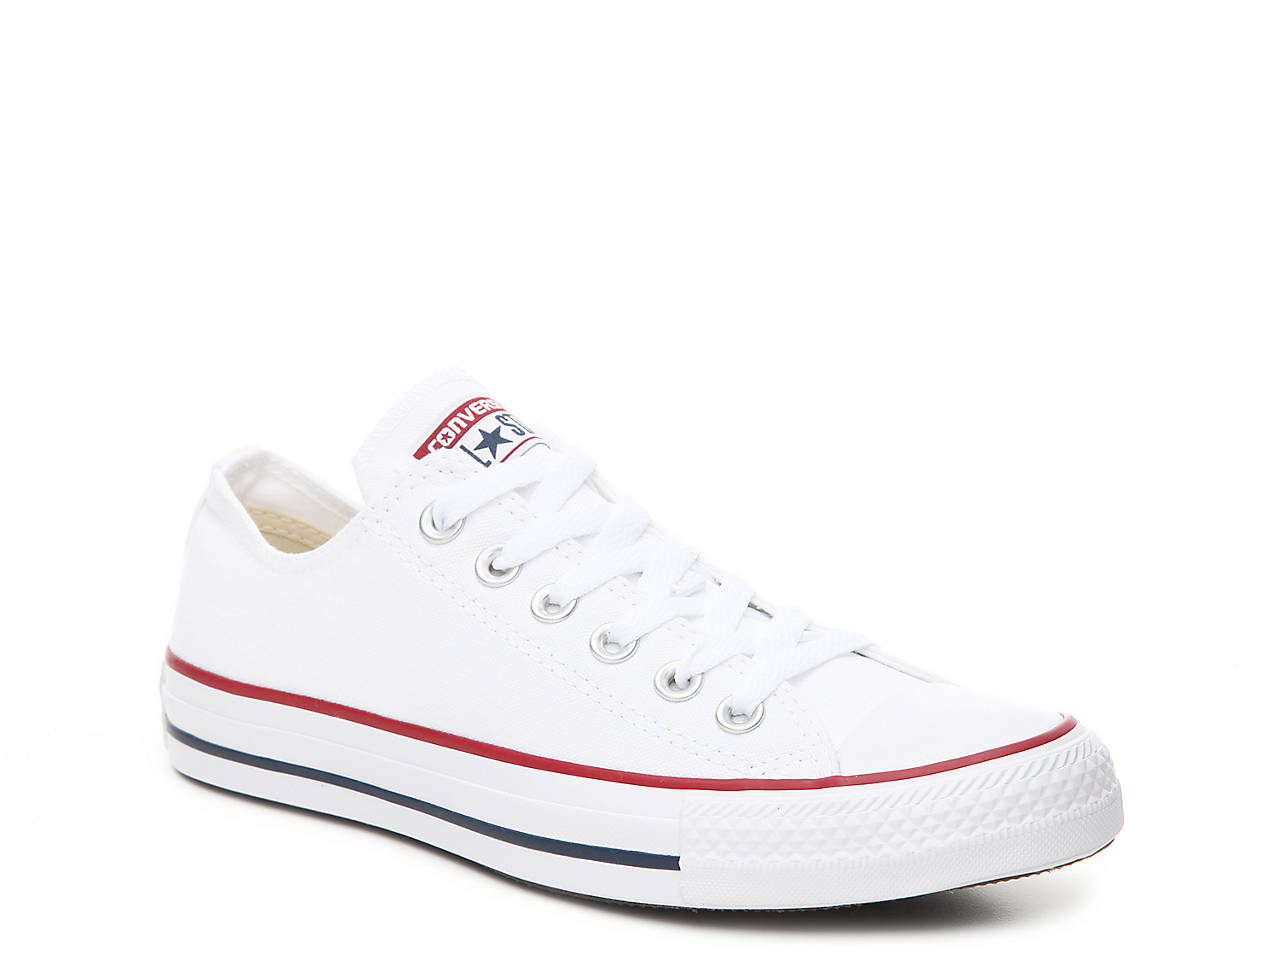 48610511e Chuck Taylor All Star Sneaker - Women's